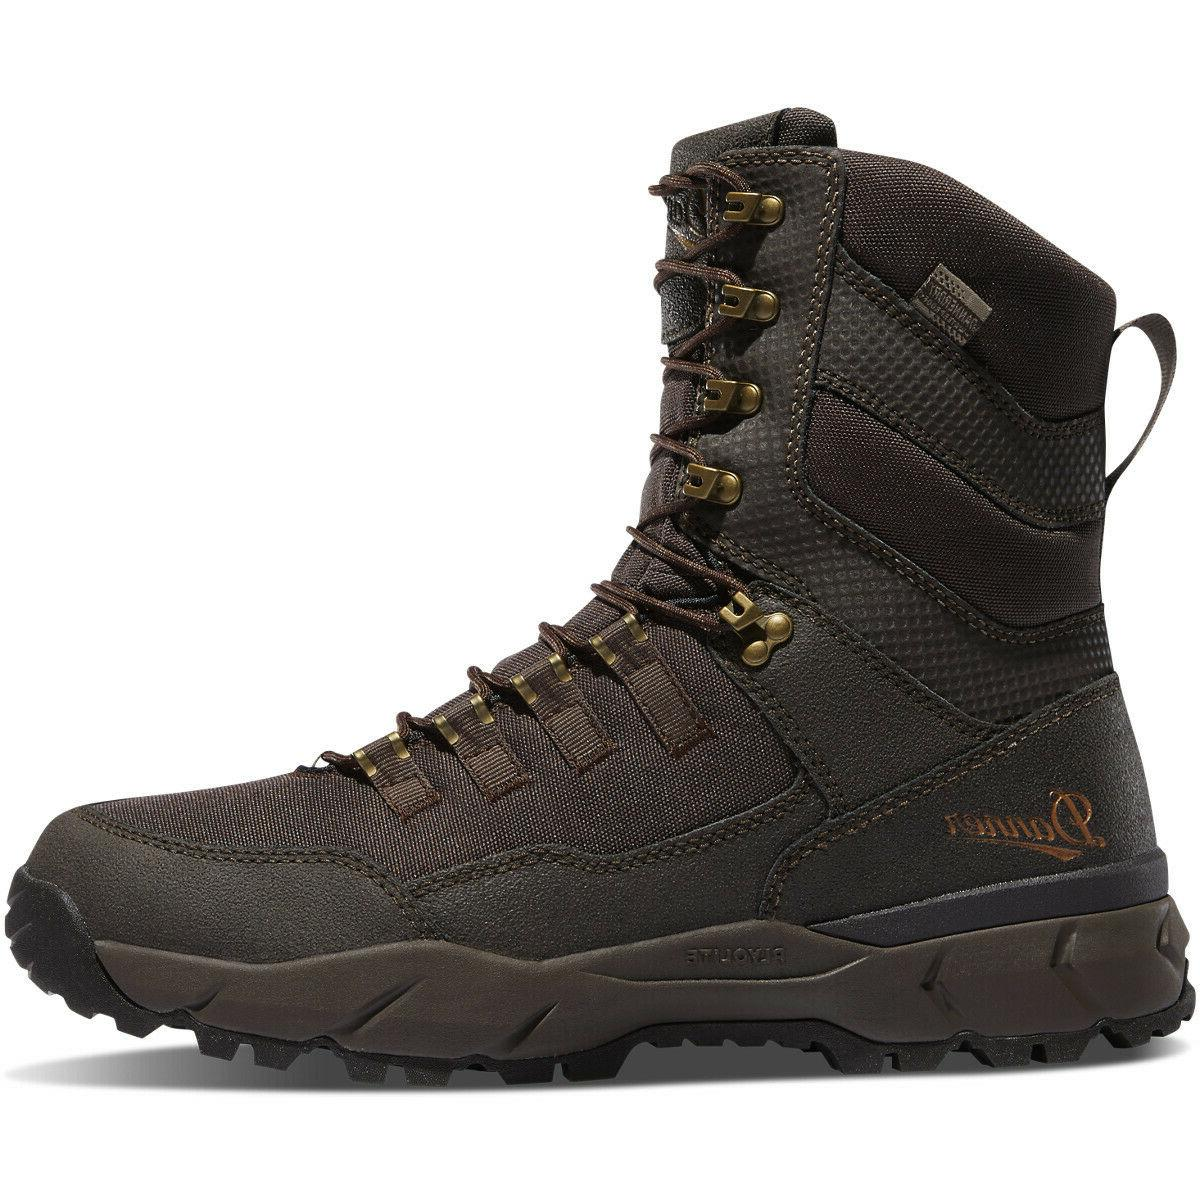 Danner Vital Hunting Size Worn New